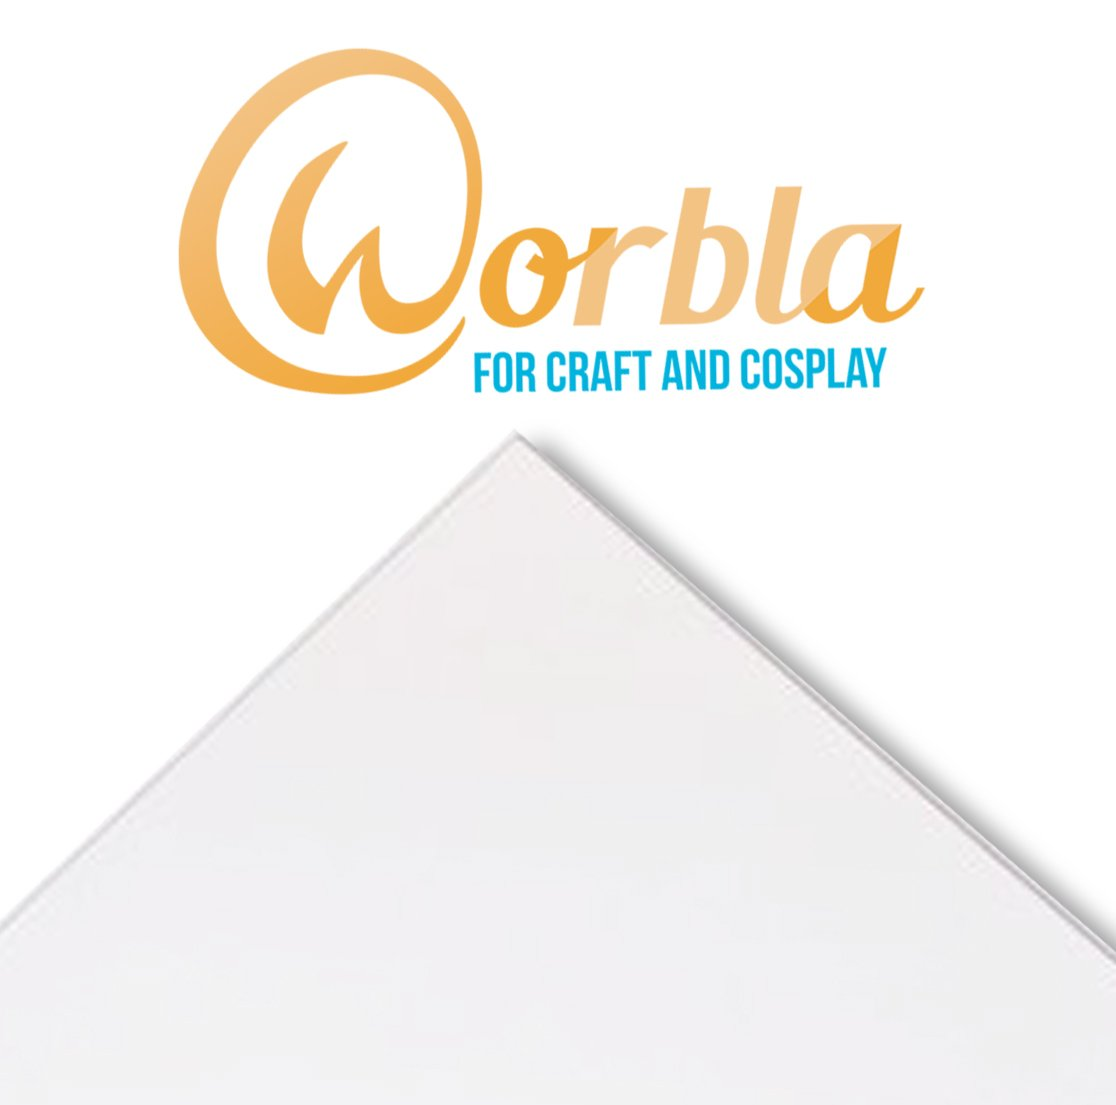 29x19 Inch Sheet Thermoplastic Material for Cosplay and Crafts Worbla BLACK Sheet Size M